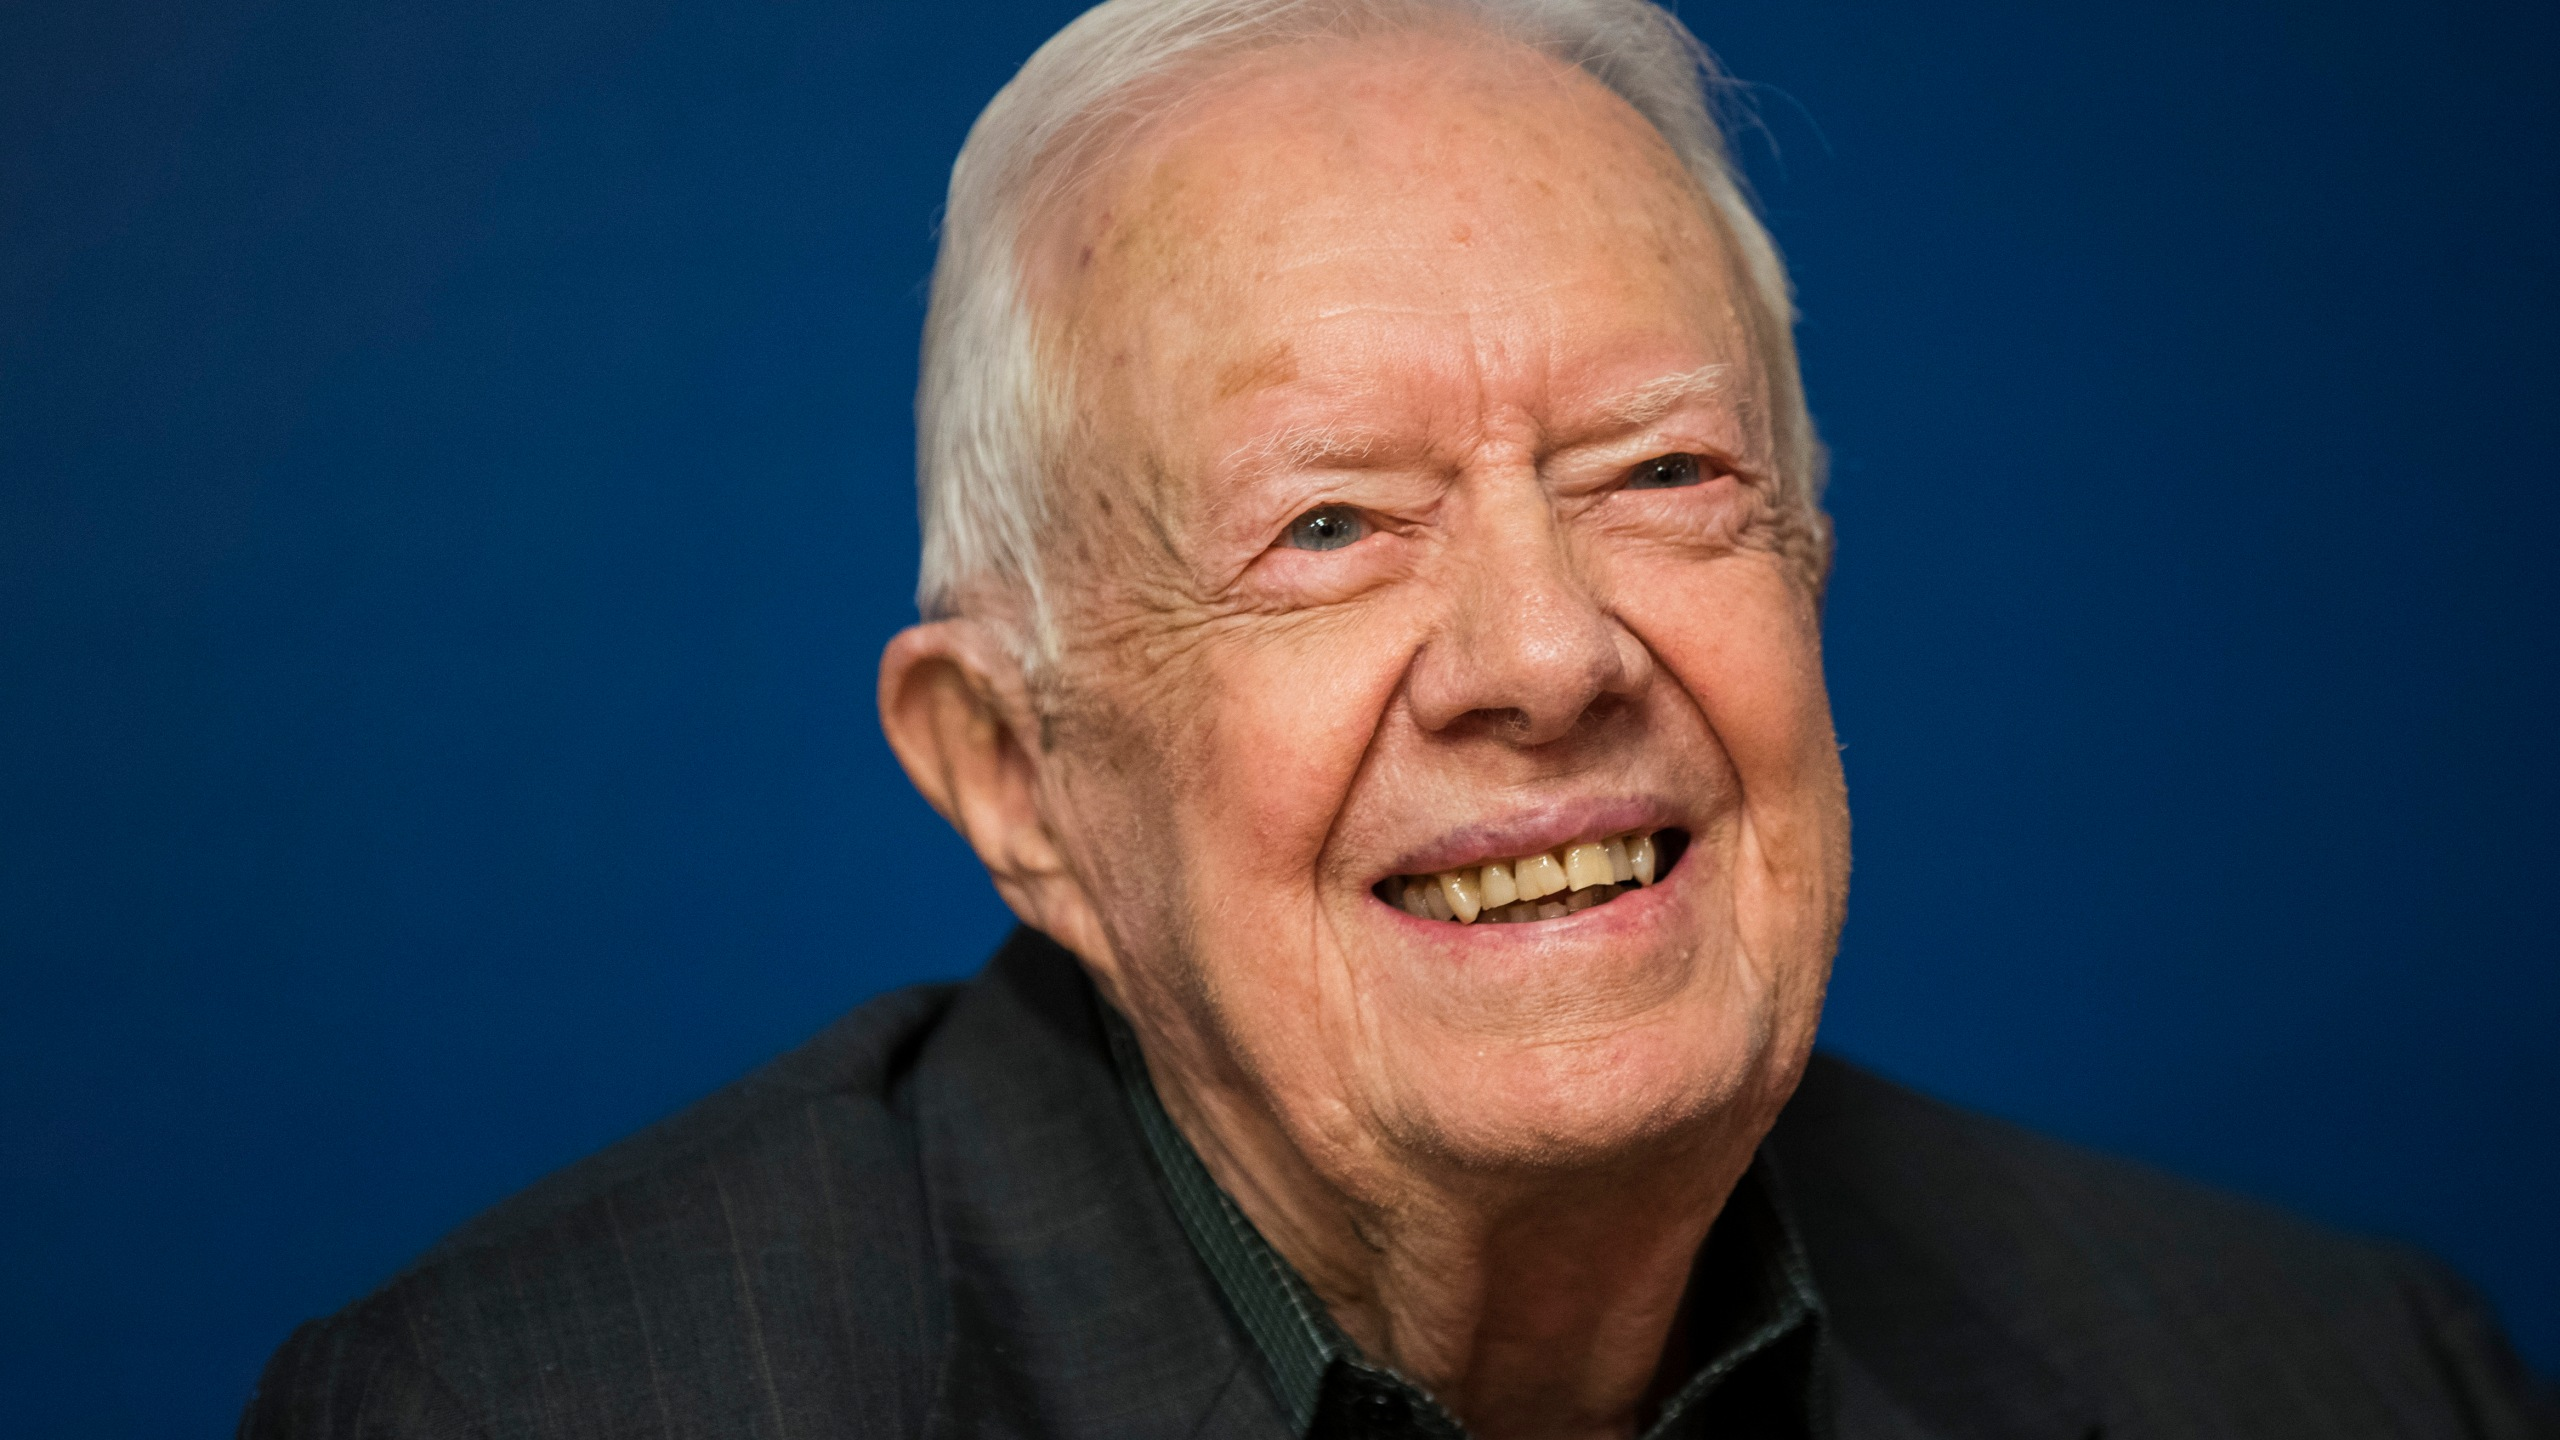 """Former U.S. President Jimmy Carter smiles during a book signing event for his new book """"Faith: A Journey For All"""" at Barnes & Noble bookstore in Midtown Manhattan, March 26, 2018, in New York City. (Credit: Drew Angerer/Getty Images)"""